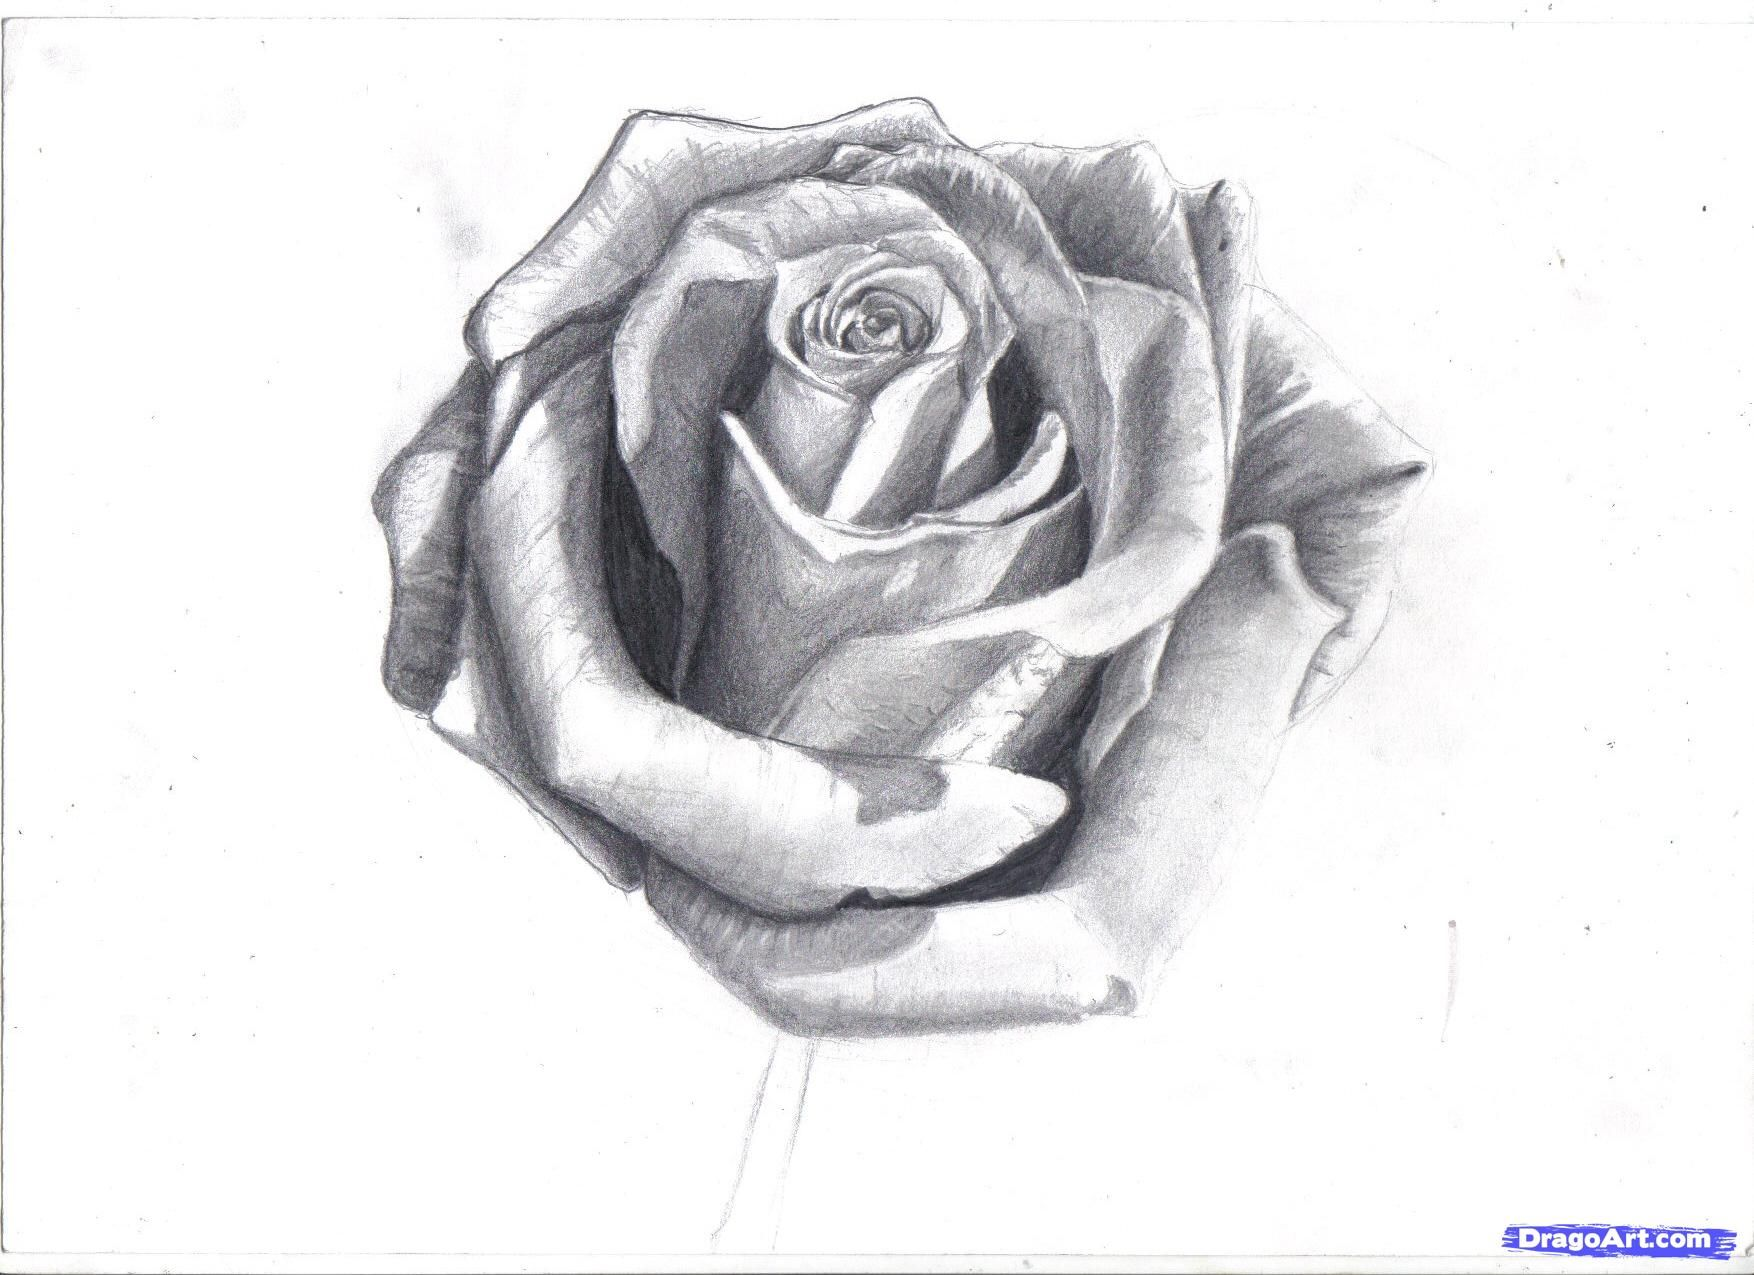 Image De Rose How To Draw A Rose In Pencil Draw A Realistic Rose Step By Step